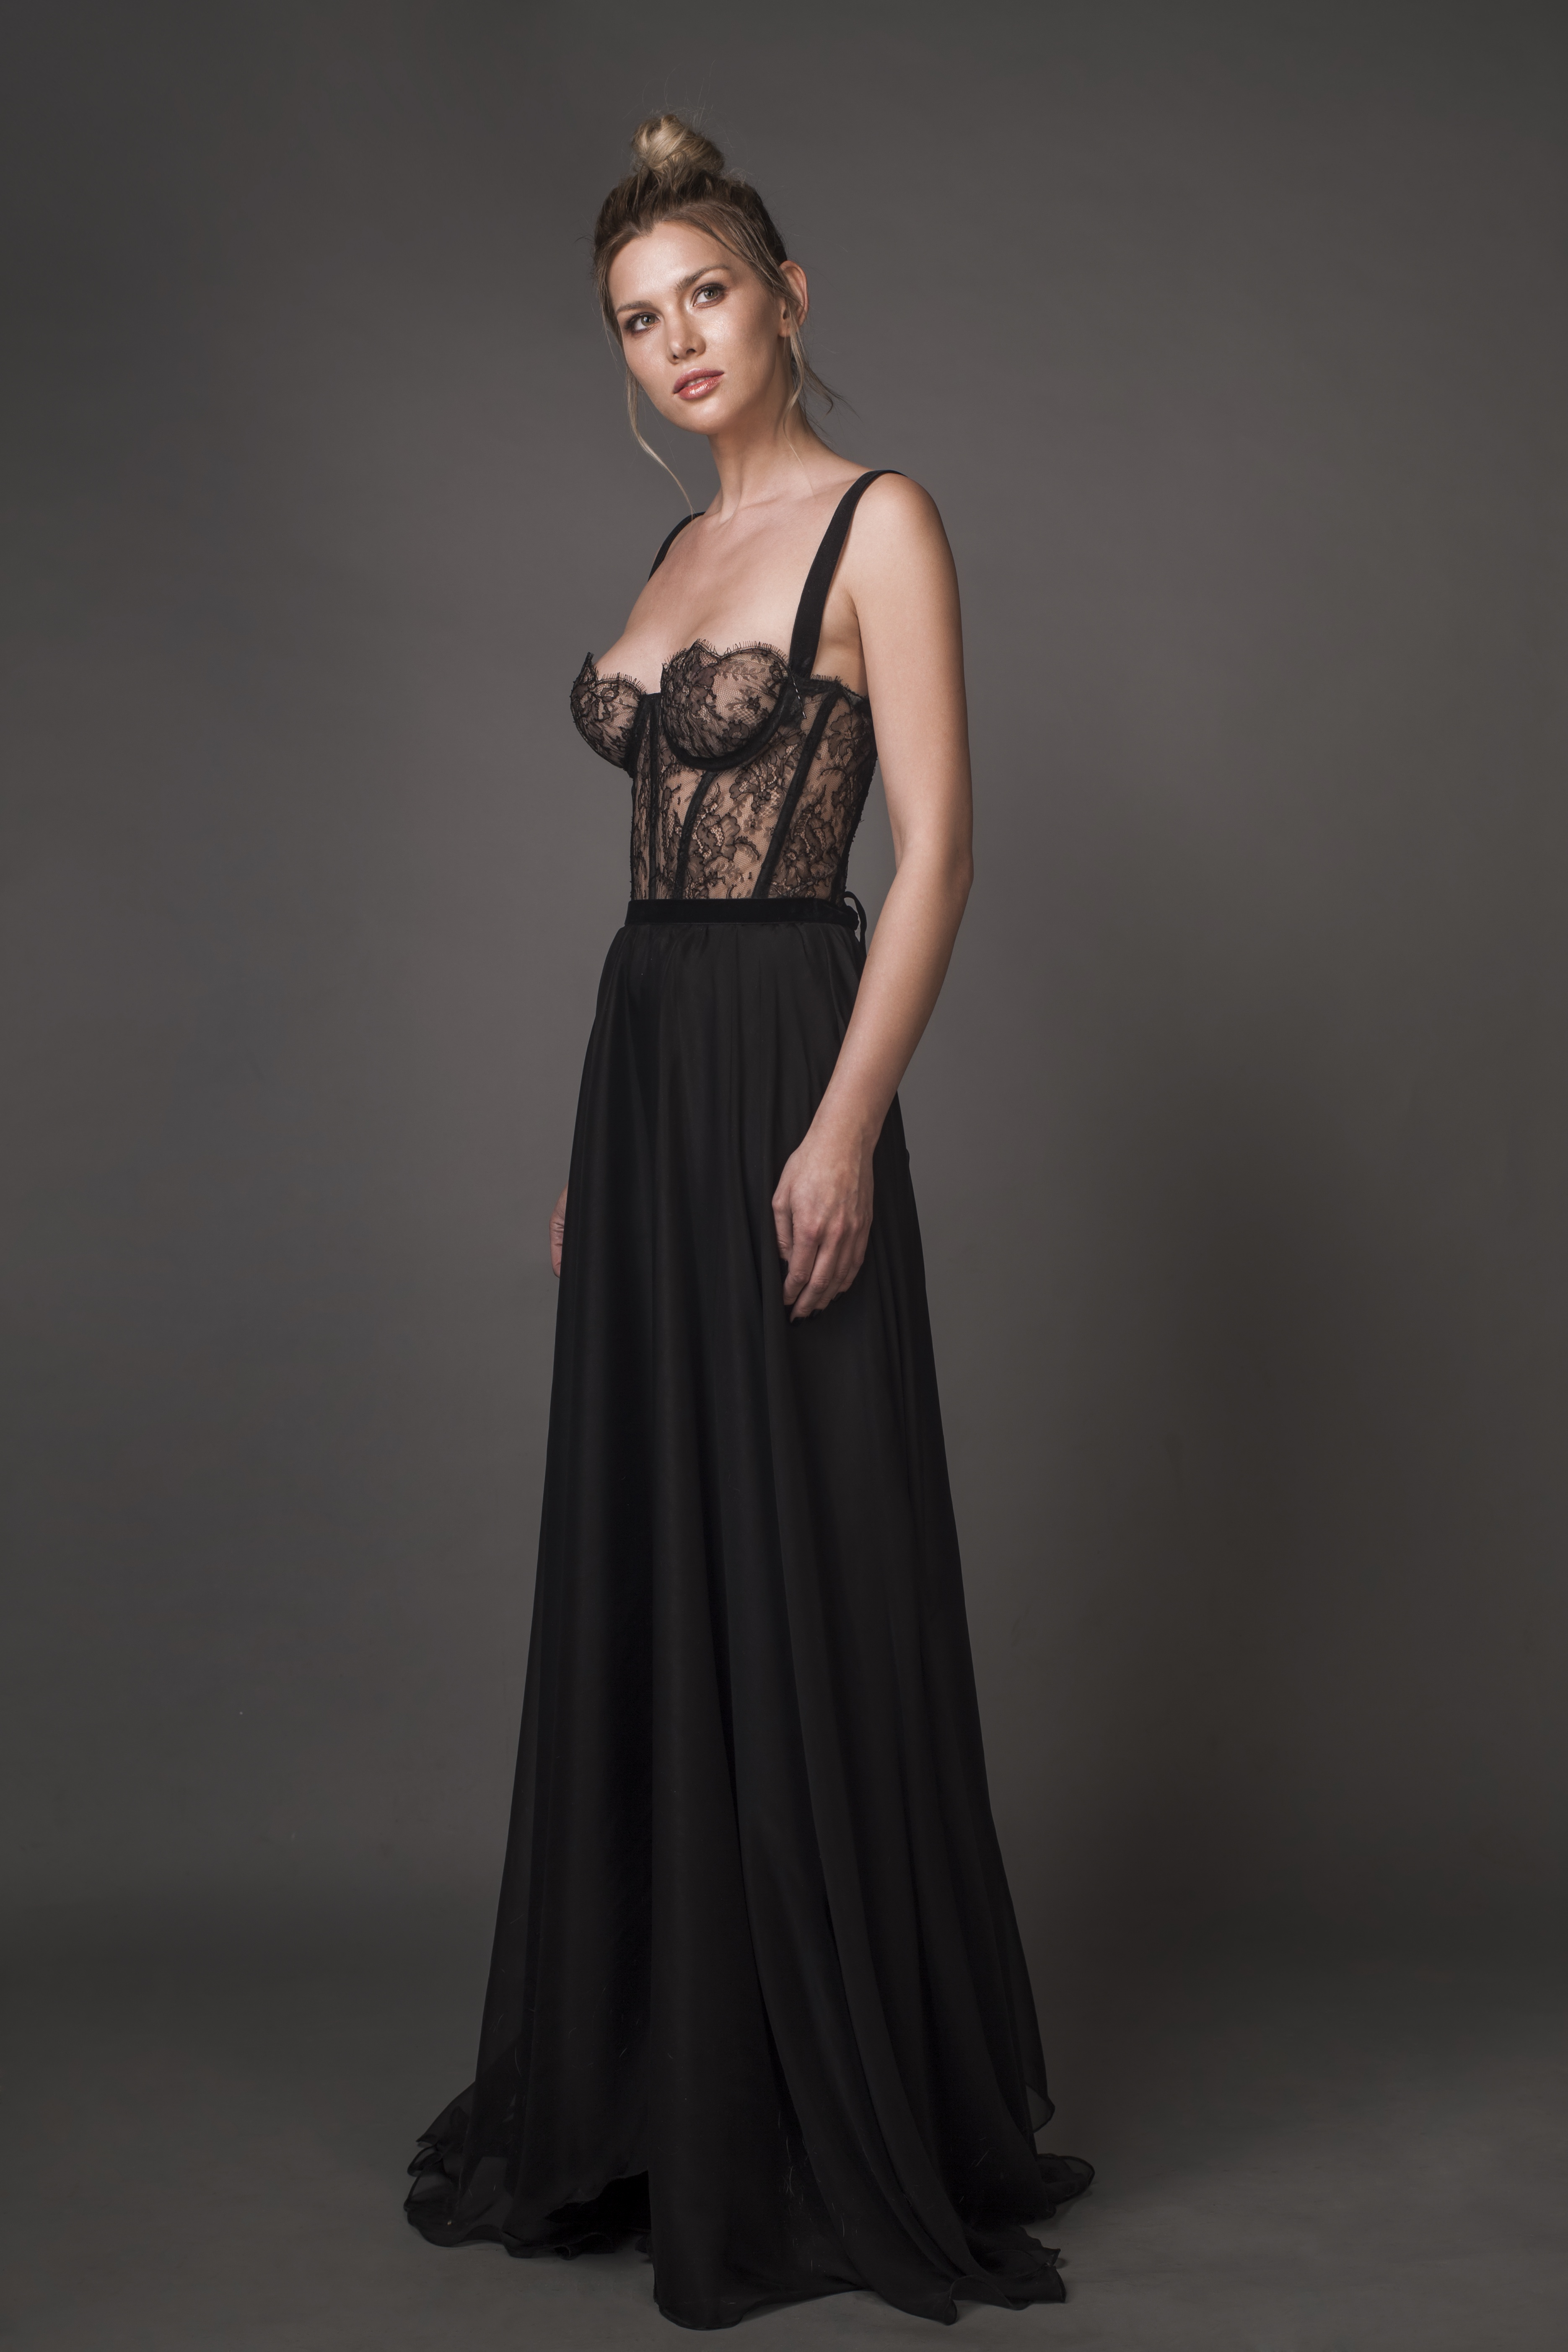 b1637ea2f08 BUSTIER GOWN WITH CHANTILLY LACE - Aureliana Shop